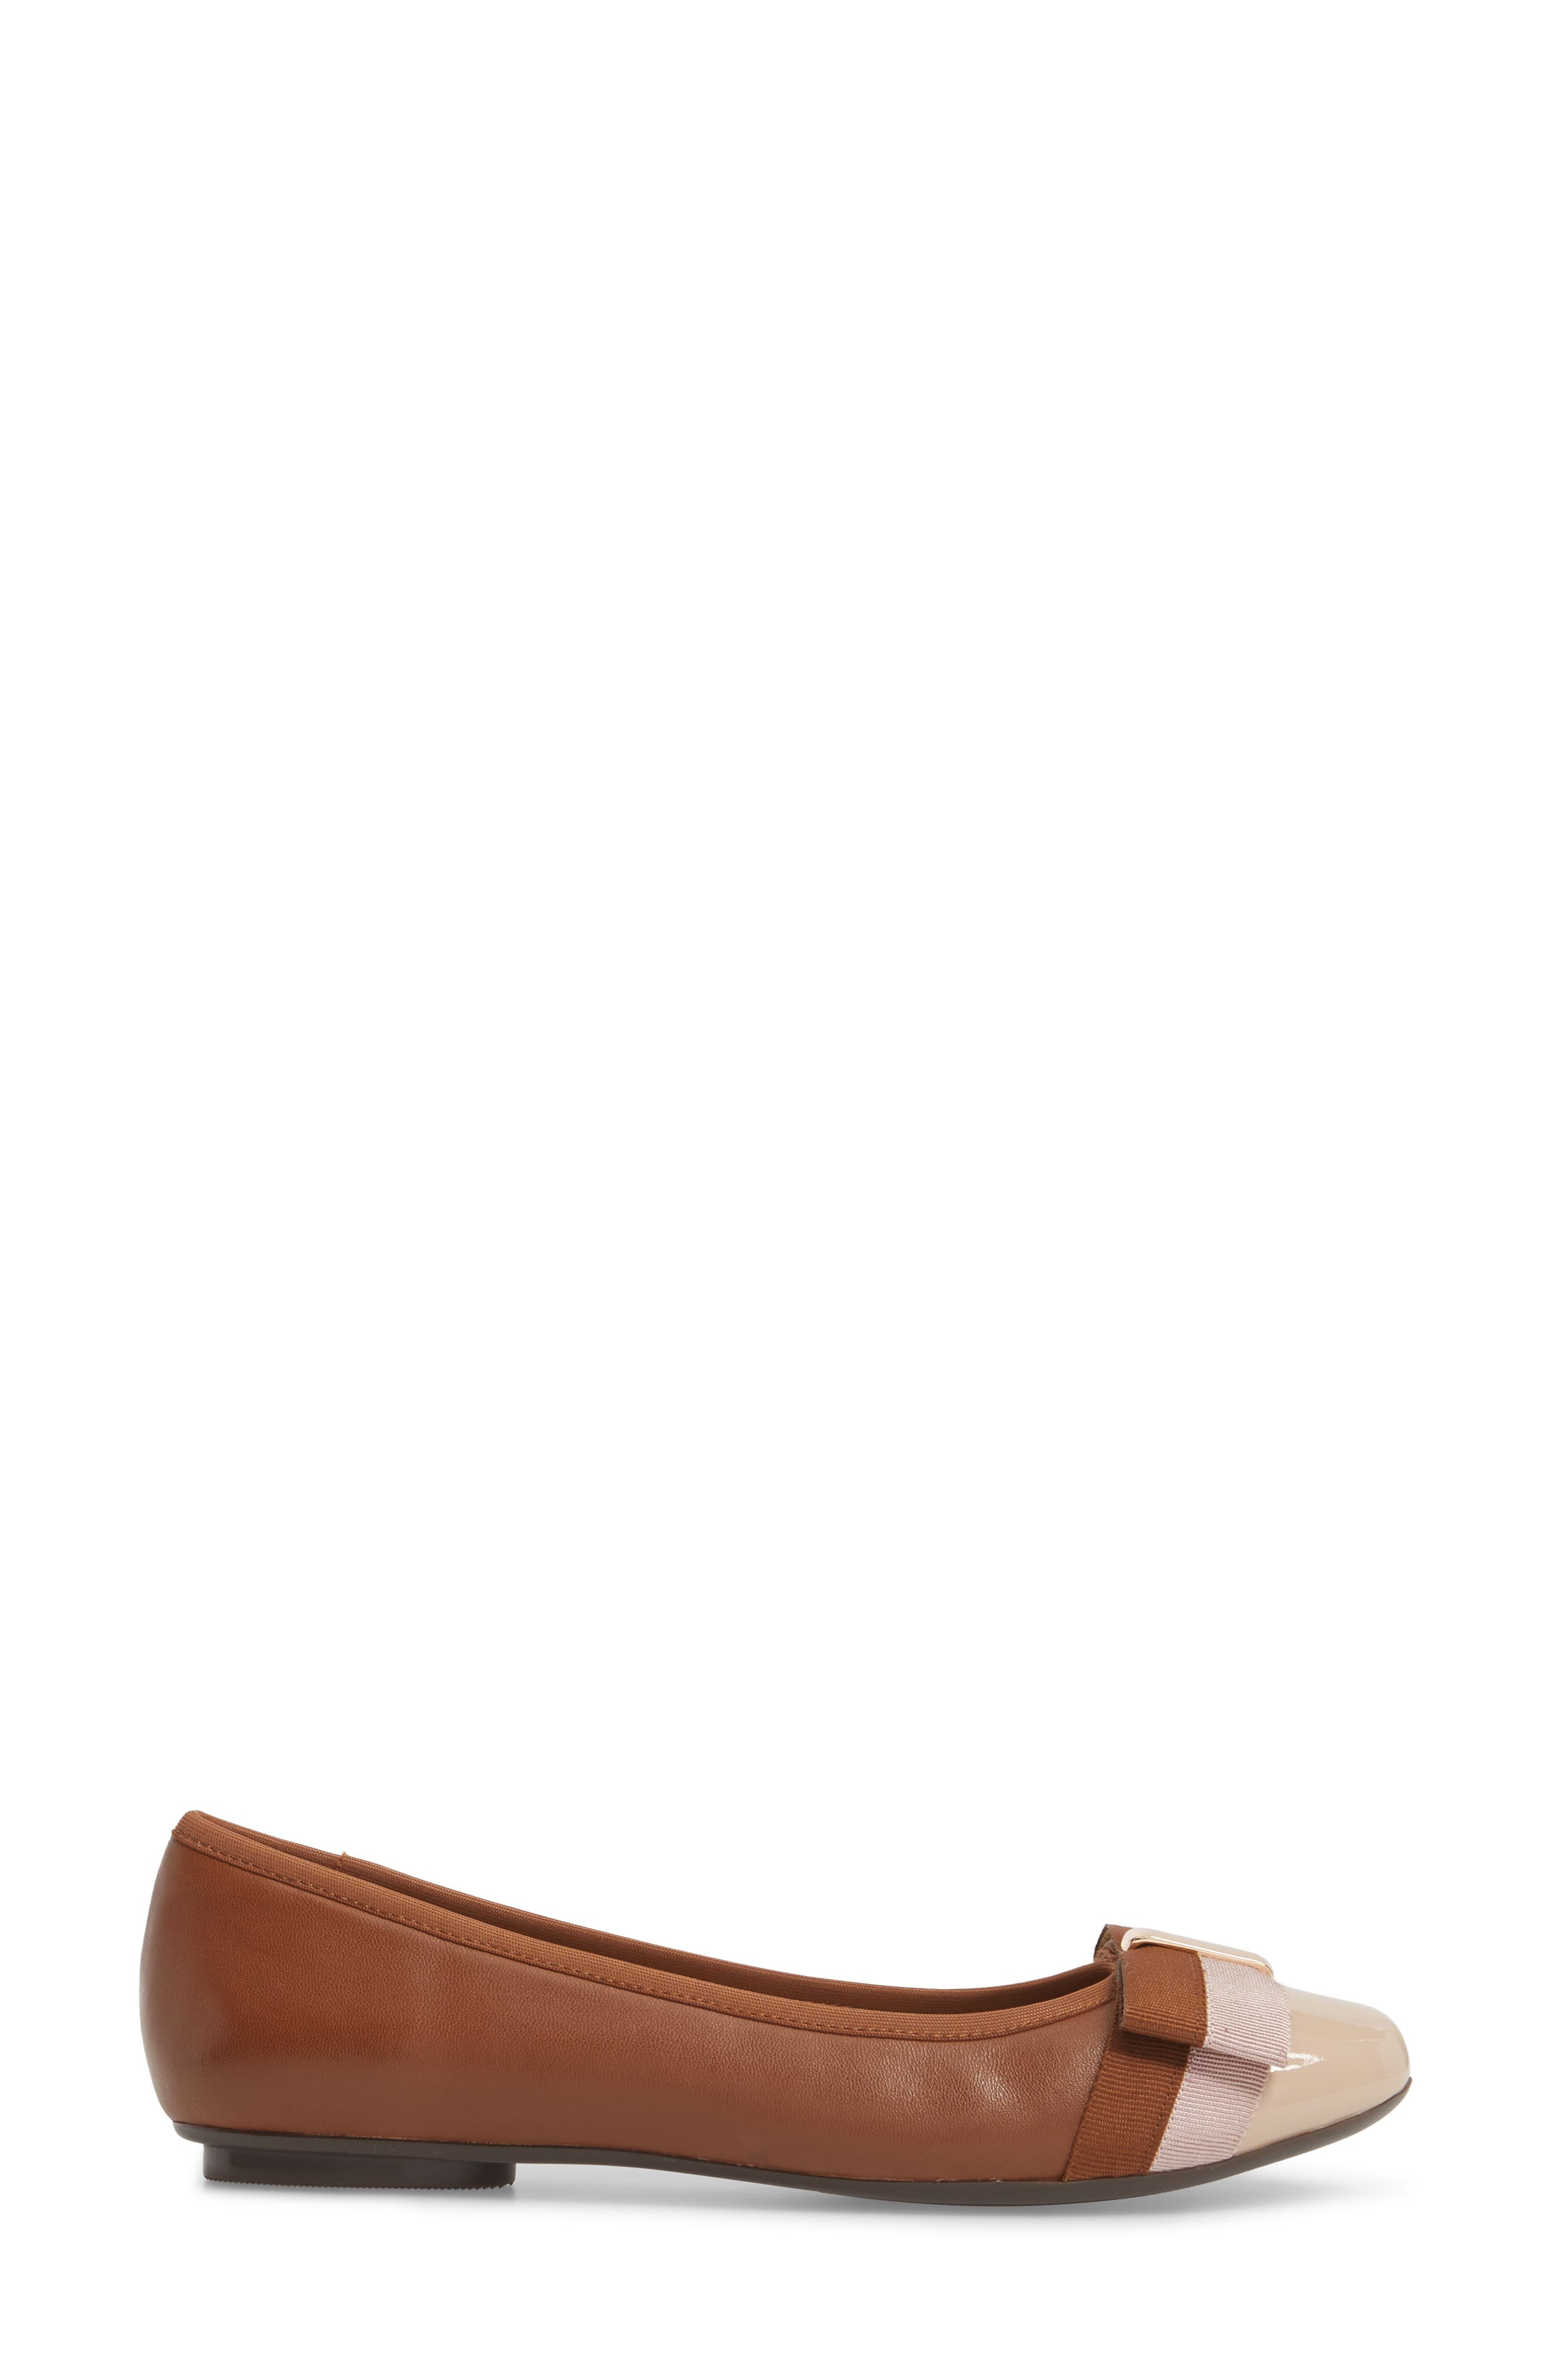 Salia Bow Flat,                             Alternate thumbnail 3, color,                             Cognac Leather